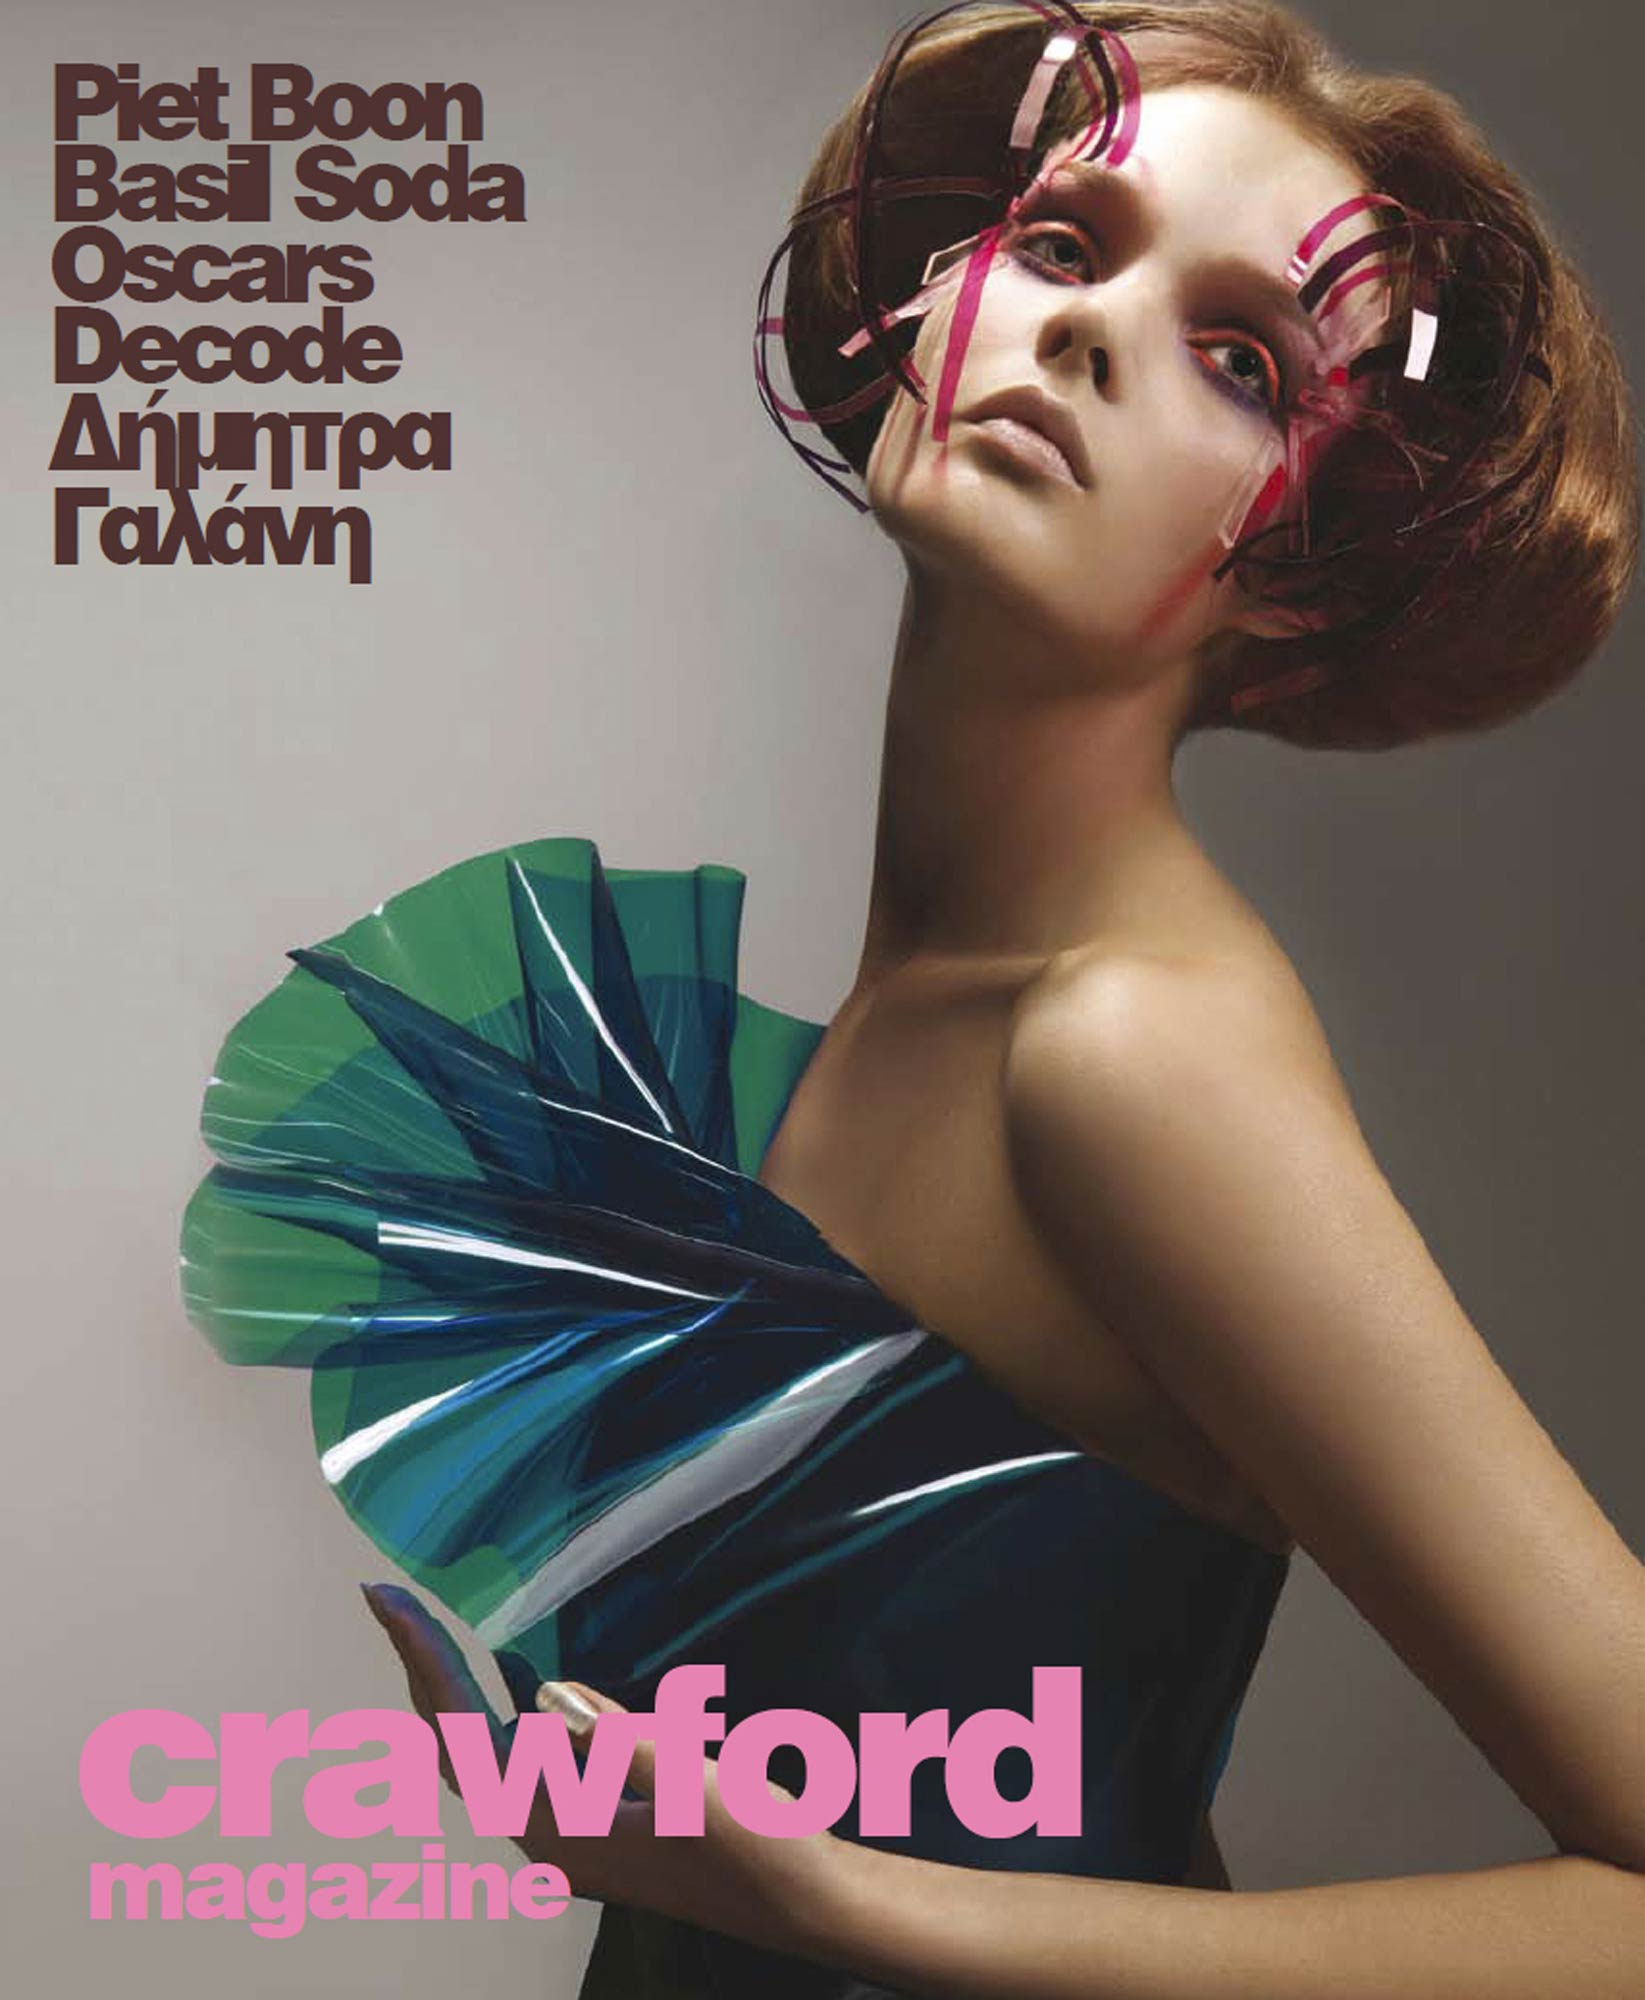 Crawford Magazine